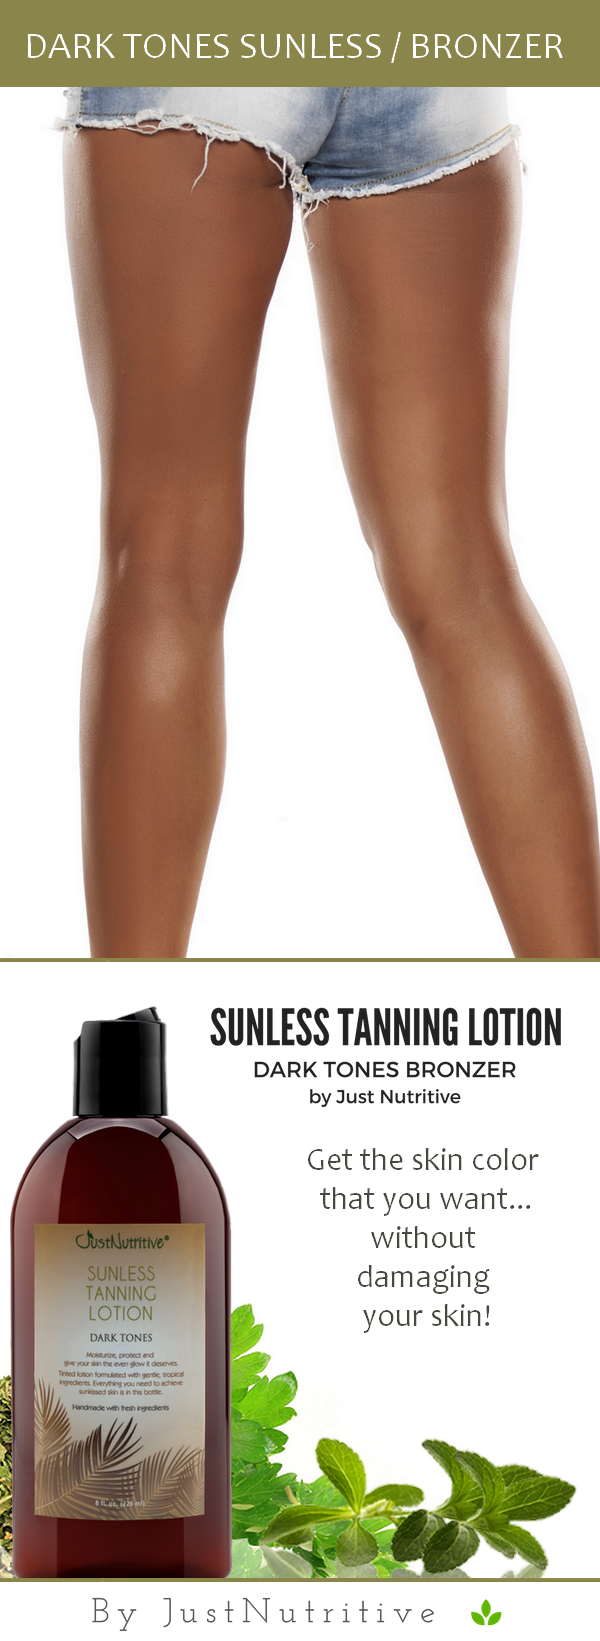 How To Get A Good Tan Without Damaging Your Skin